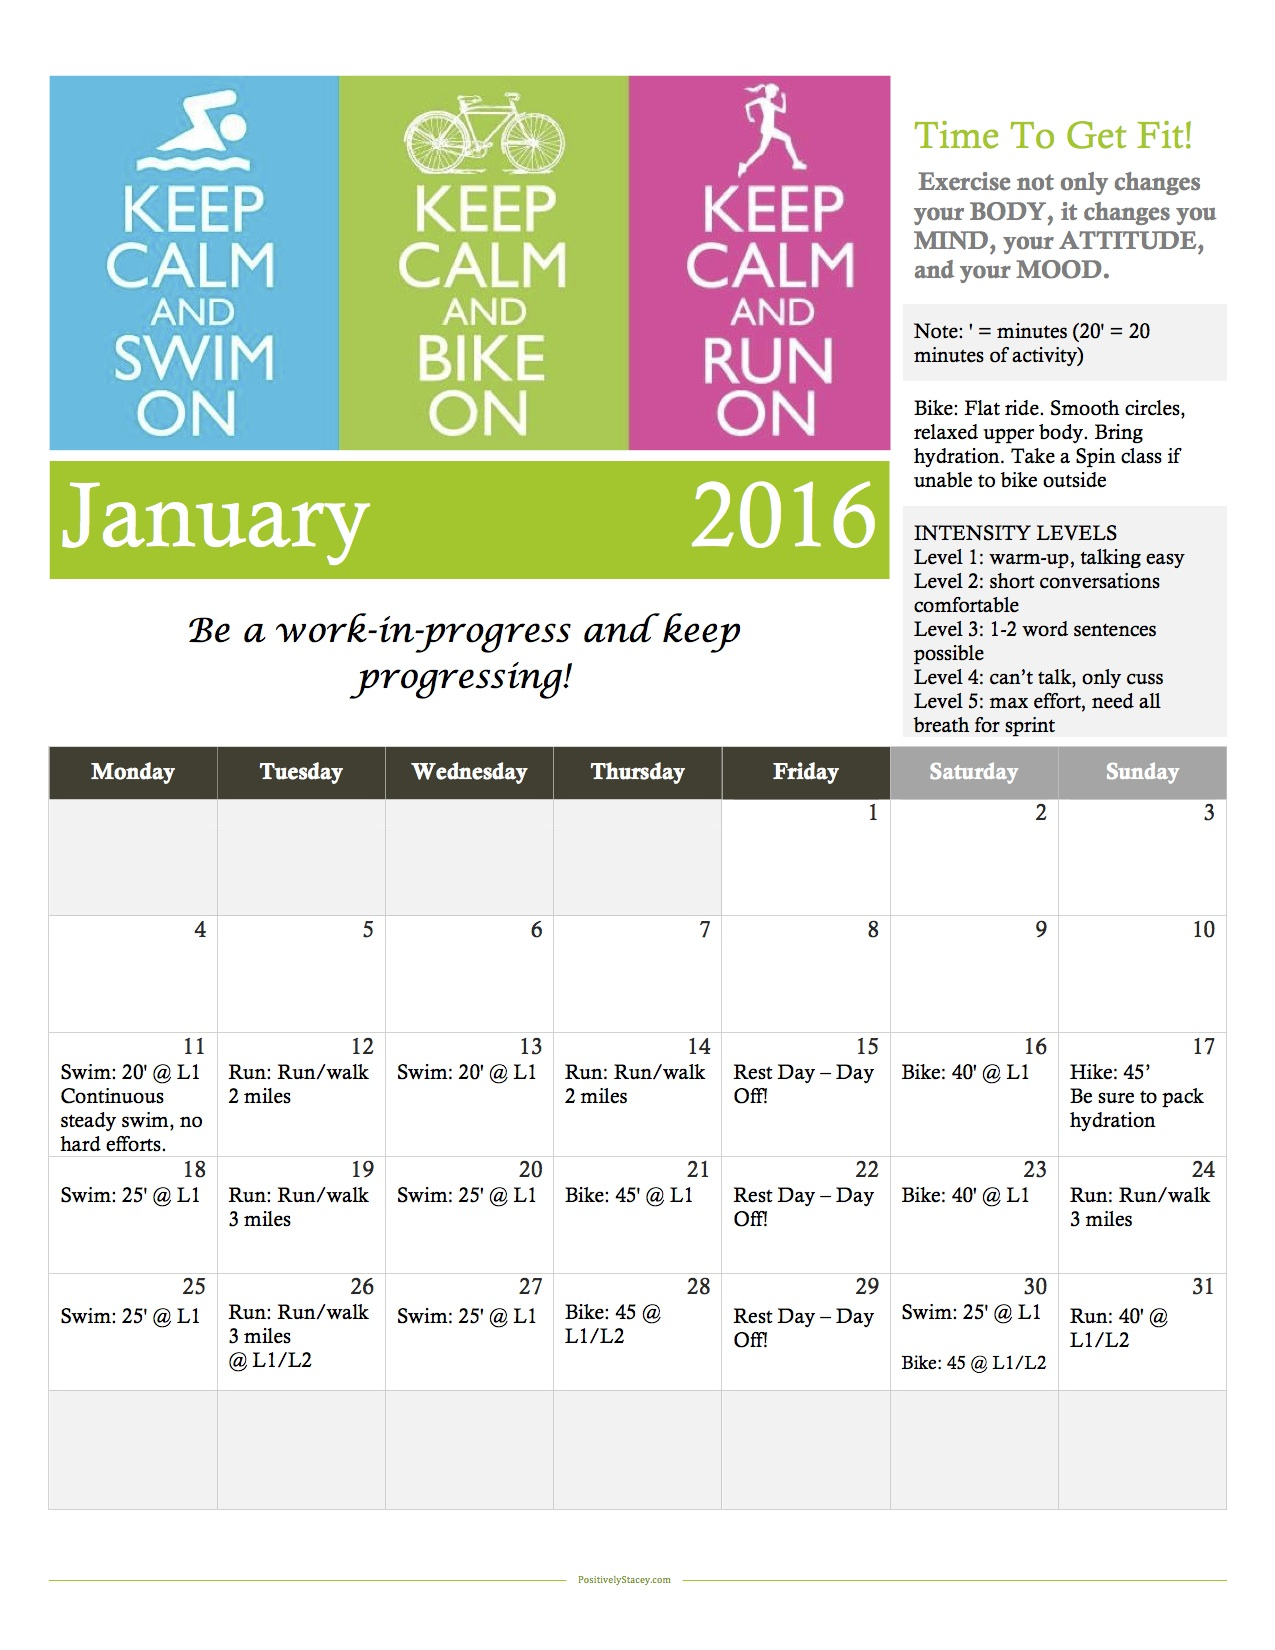 January Workout Calendar copy